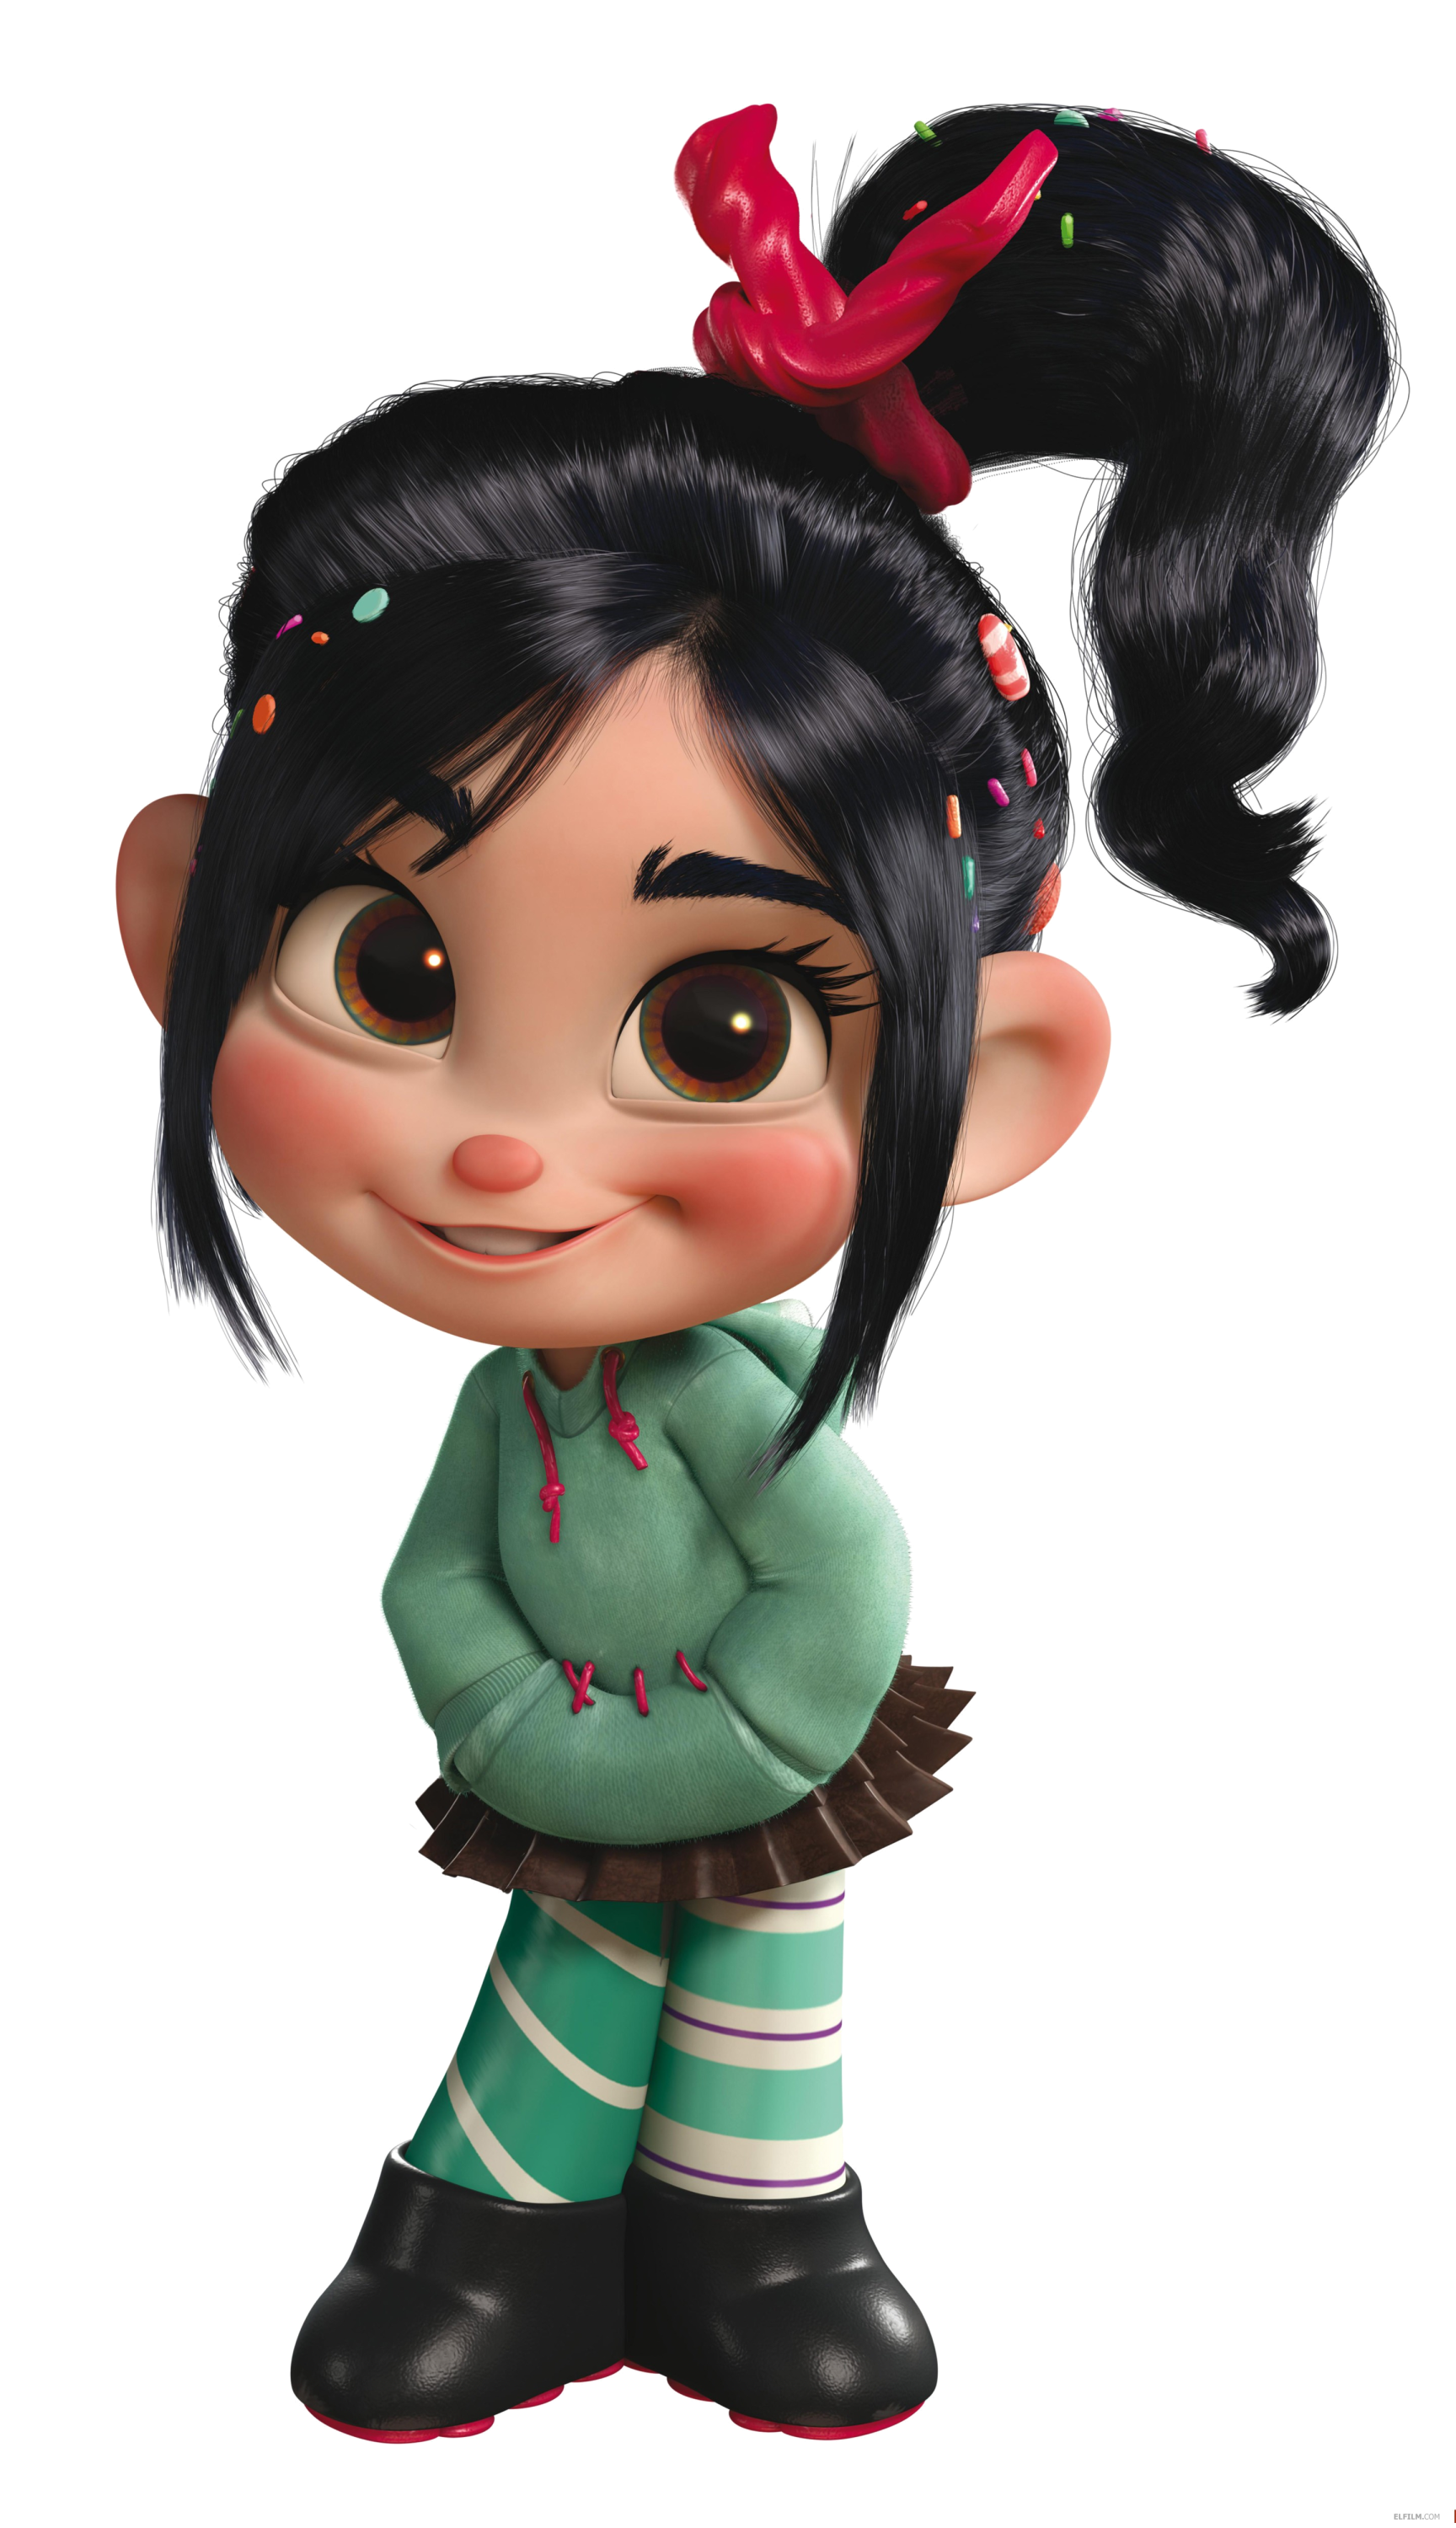 Vanellope von schweetz wreck it ralph wiki - Female cartoon characters wallpapers ...